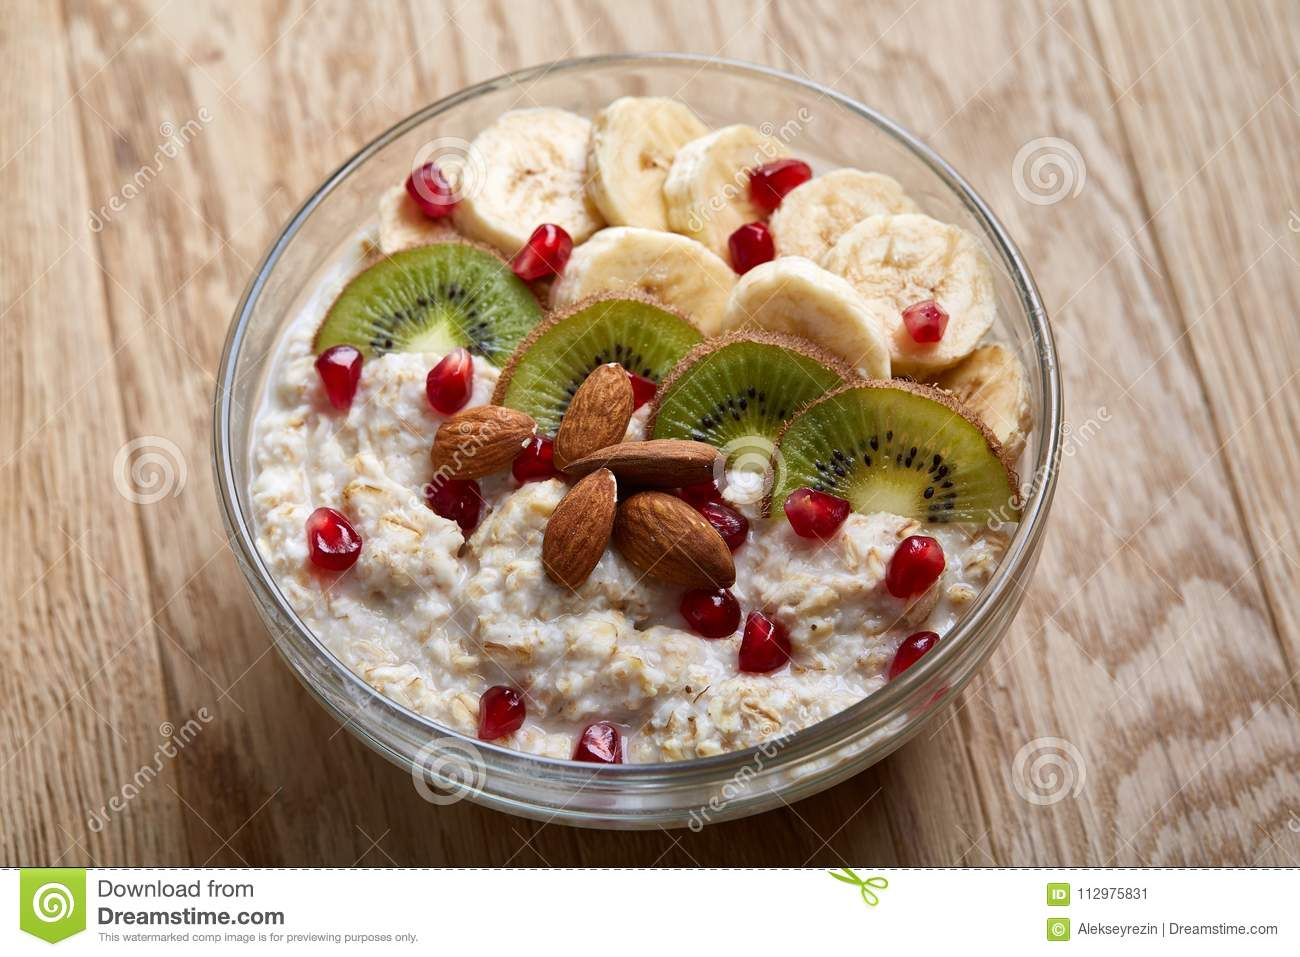 Delicious oatmeal porrige with fruits in glass bowl over rustic wooden background, shallow depth of field, close-up.